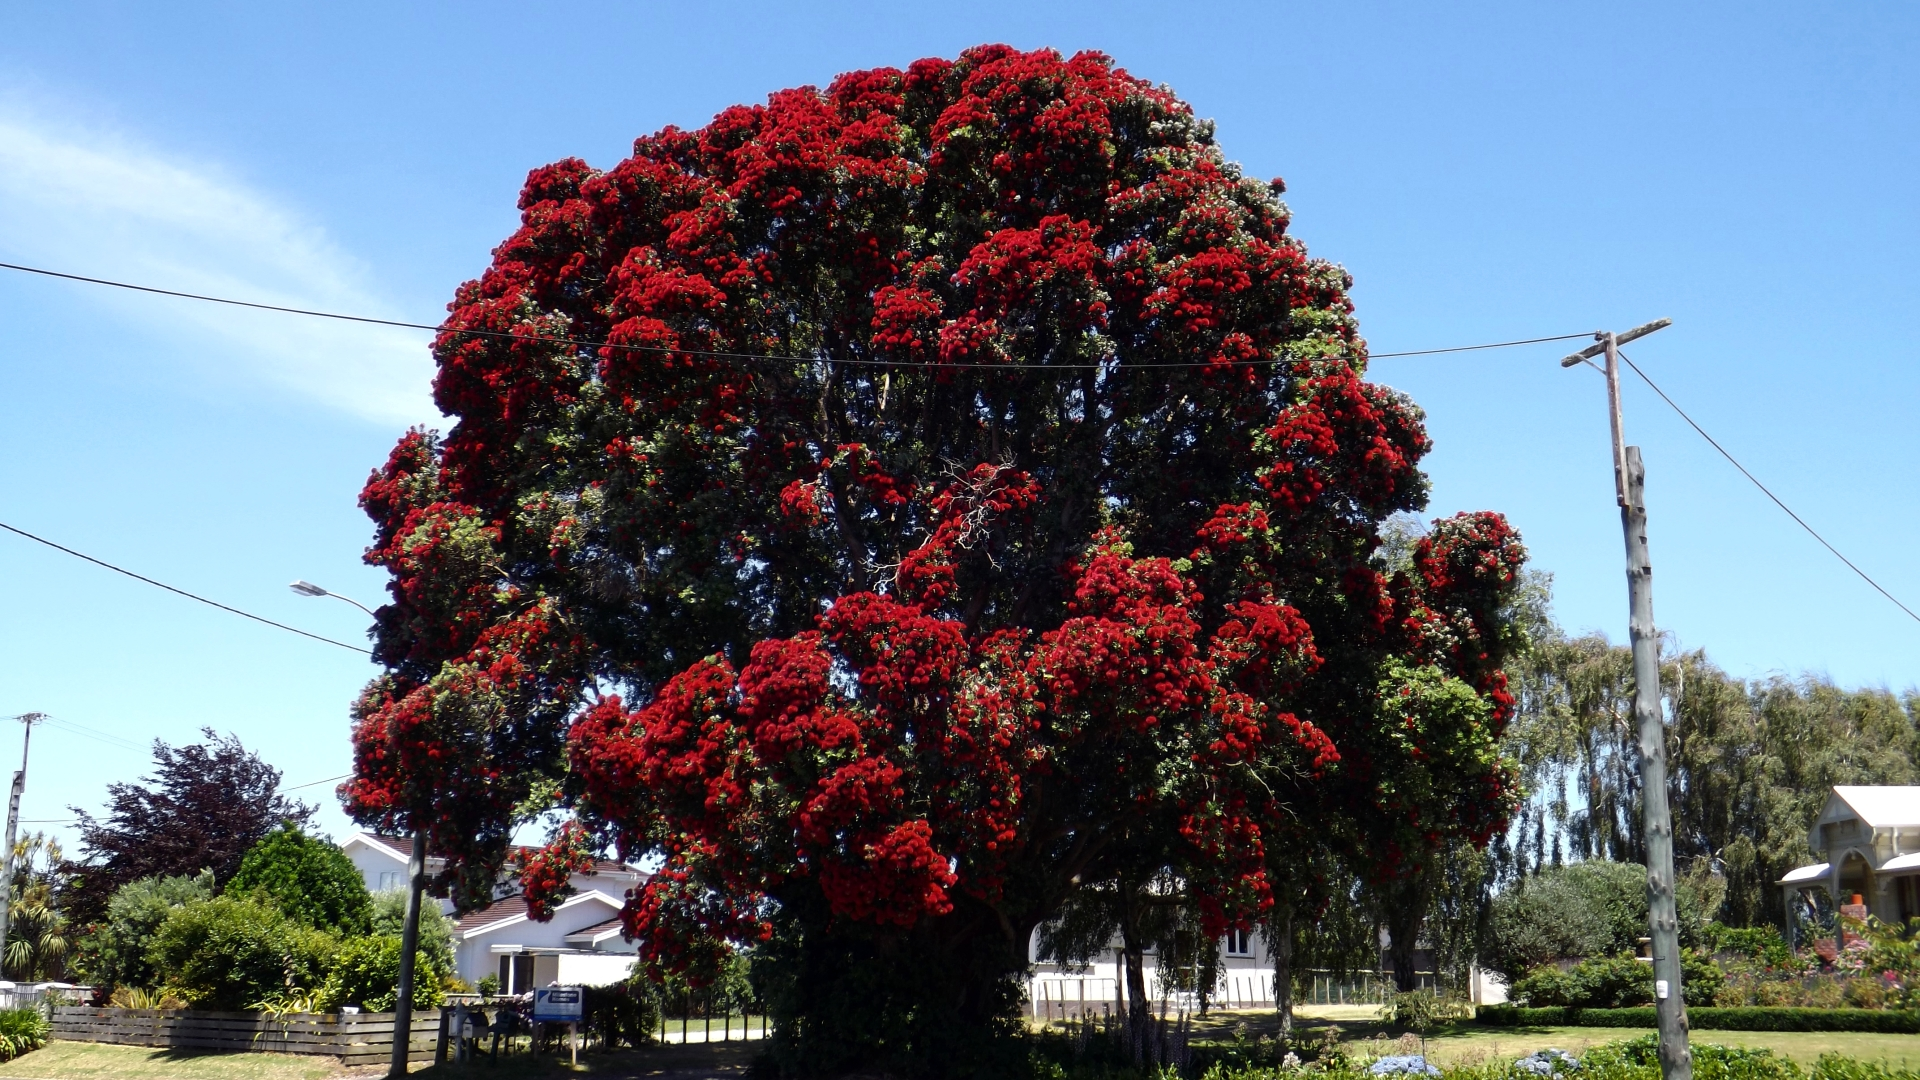 the pohutukawa tree Nothing may compare to the pohutukawa or rata tree at your favourite holiday spot, but we can all enjoy a touch of that crimson splendour at home in the garden.